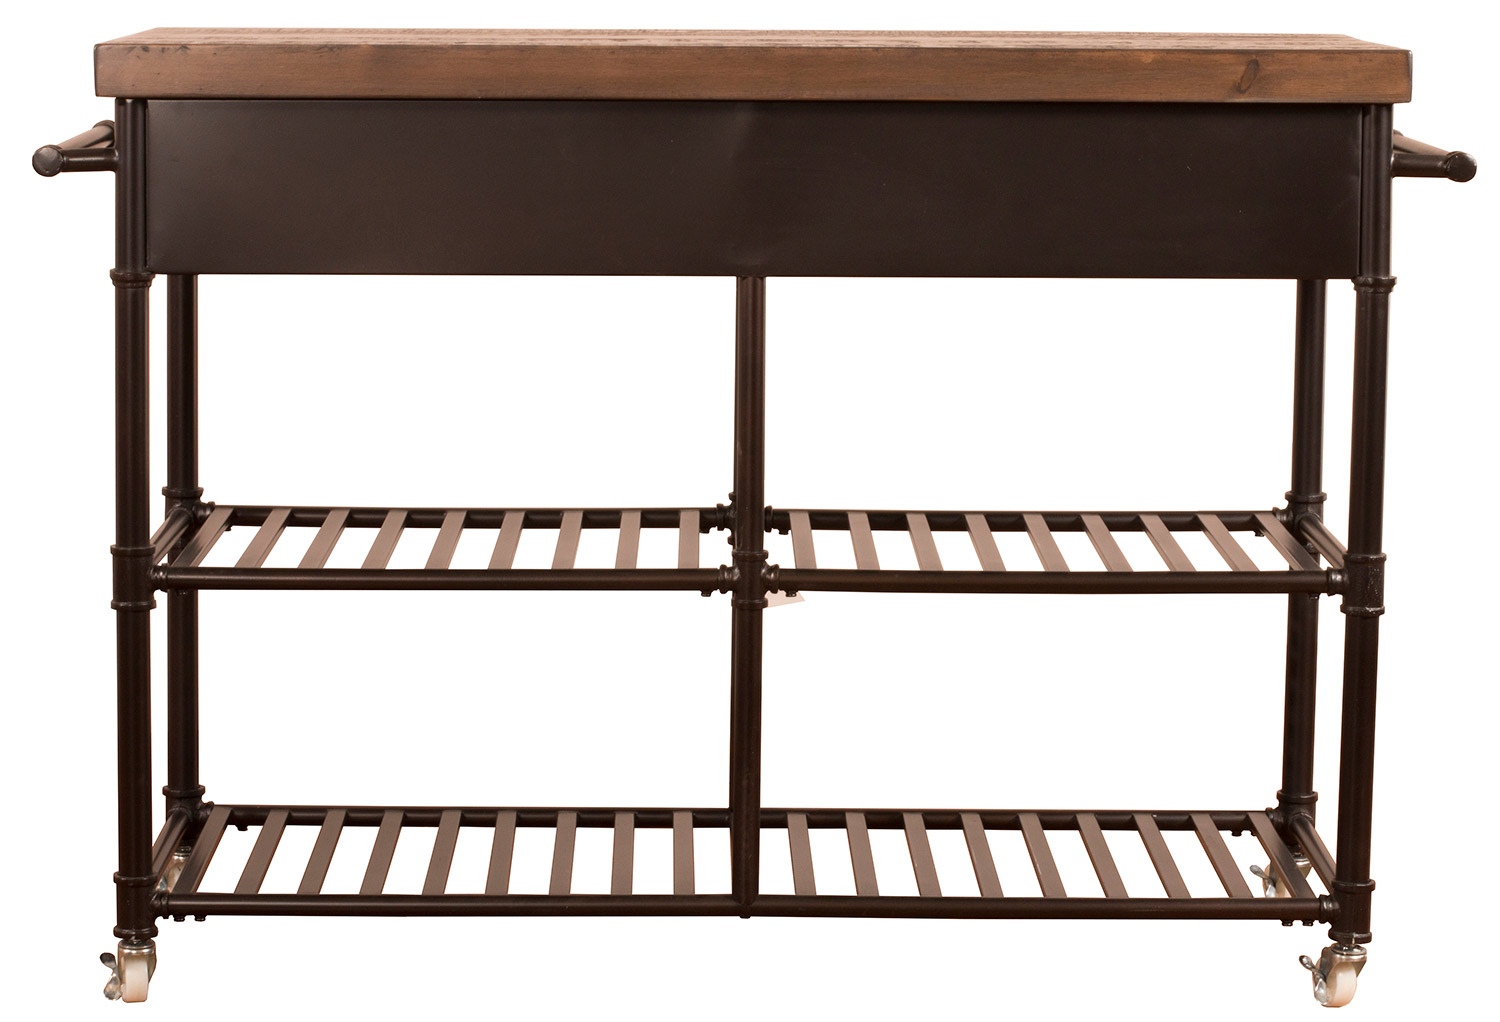 Hillsdale Casselberry Kitchen Cart - Brown/Distressed Walnut